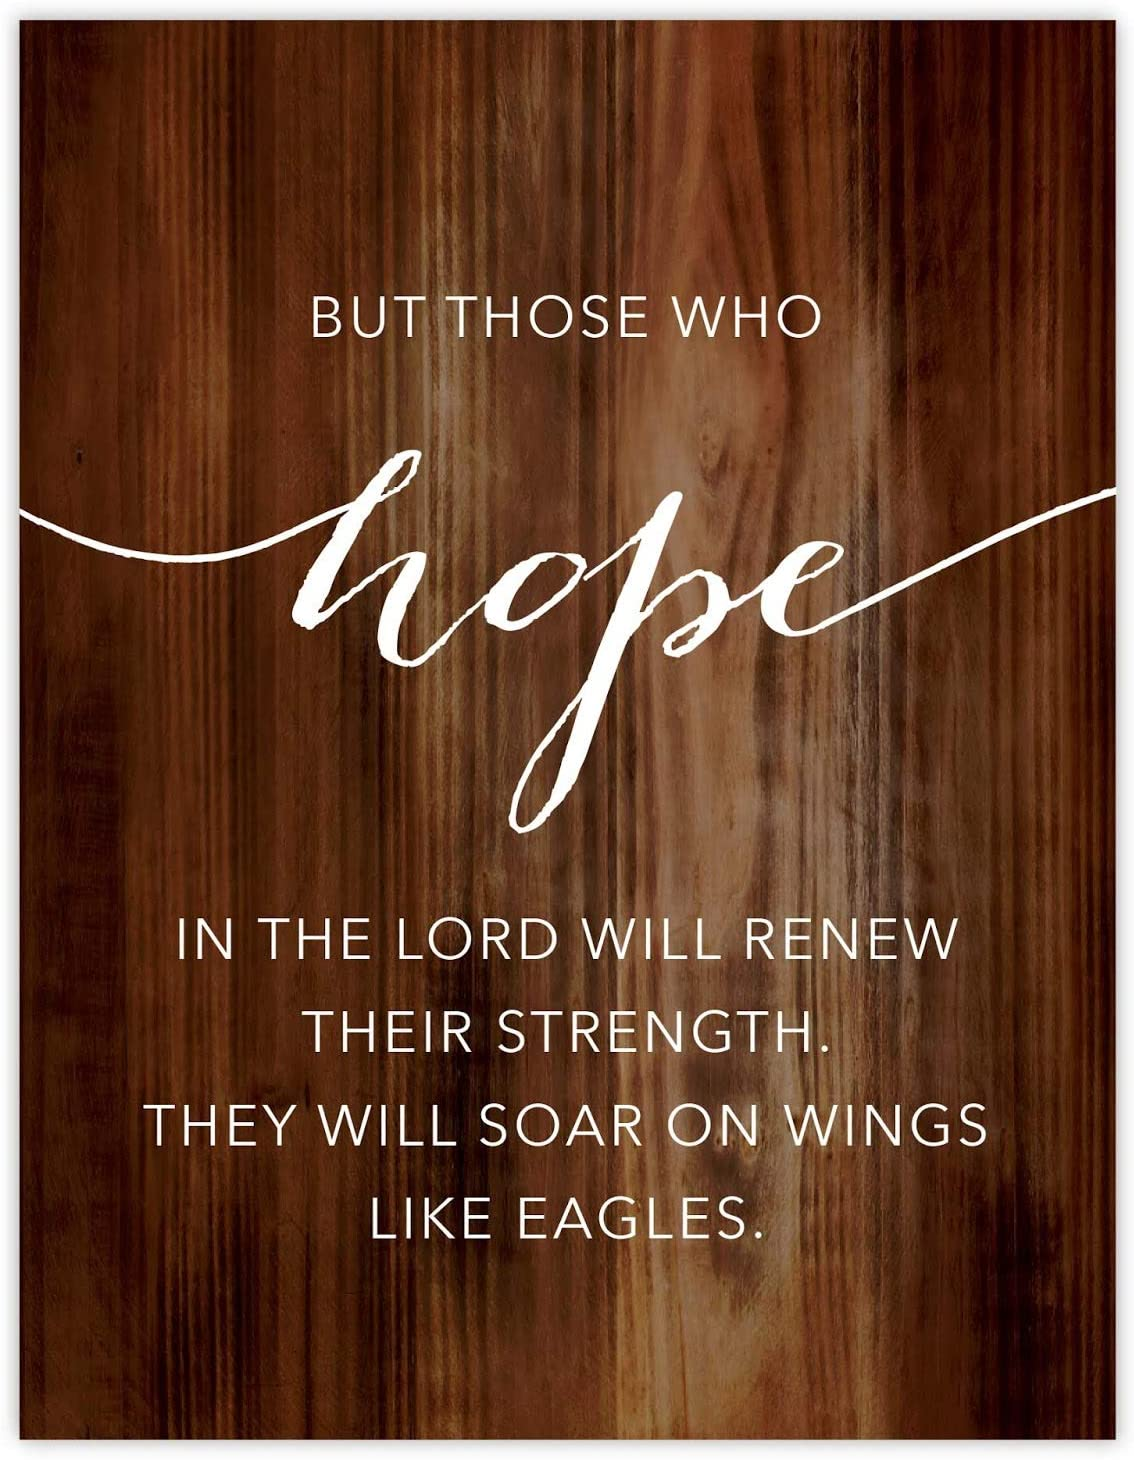 Andaz Press Christian Bible Verses 8.5x11-inch Wood Poster, Isaiah 40:31: But Those who Hope in The Lord Will Renew Their Strength. They Will soar on Wings Like Eagles, 1-Pack